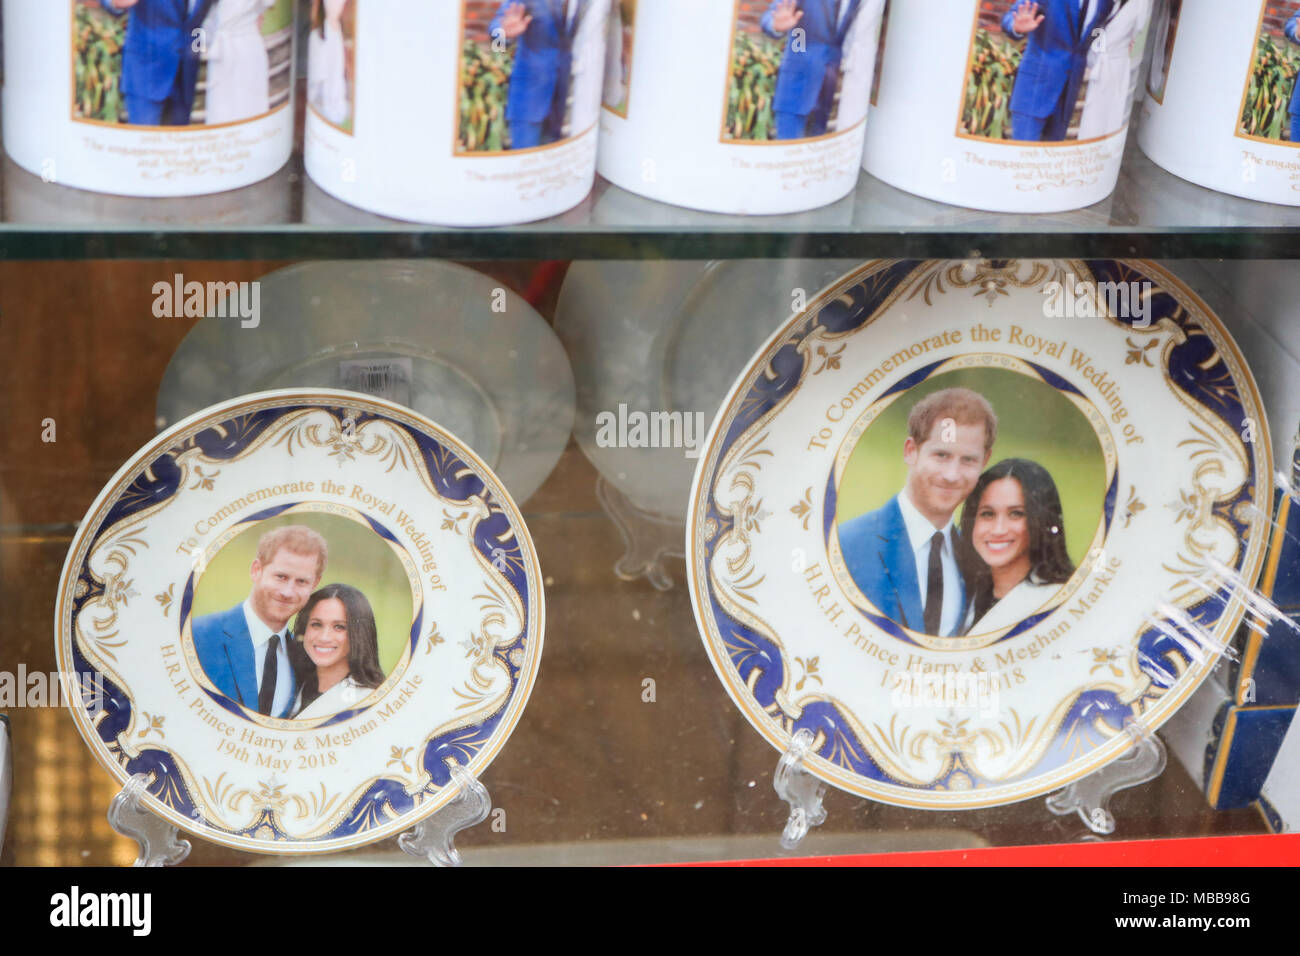 London UK. 10th April 2018. A Souvenir shop in central London Royal Wedding memorabilia with the portraits of HRH Prince Harry and his fiancee Meghan Markle featured on souvenr flags and mugs before the royal marriage at Windsor Castle   on 19th May 2018 Credit: amer ghazzal/Alamy Live News Stock Photo